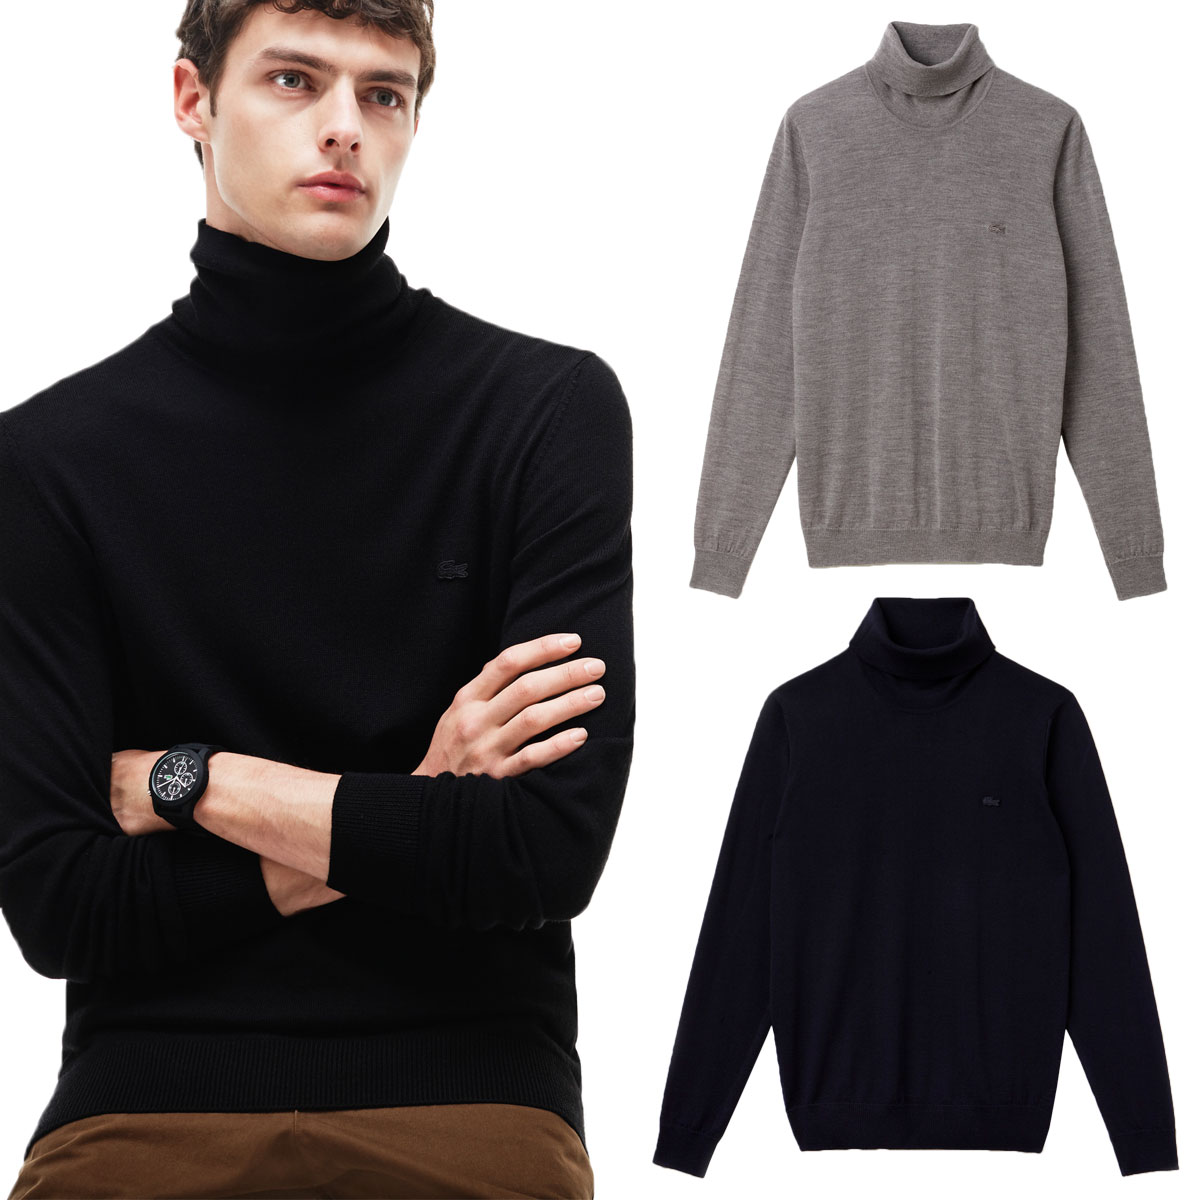 b3c867d1a Details about Lacoste Mens AH2991 Turtleneck Roll Neck 100% Wool Jersey  Sweater